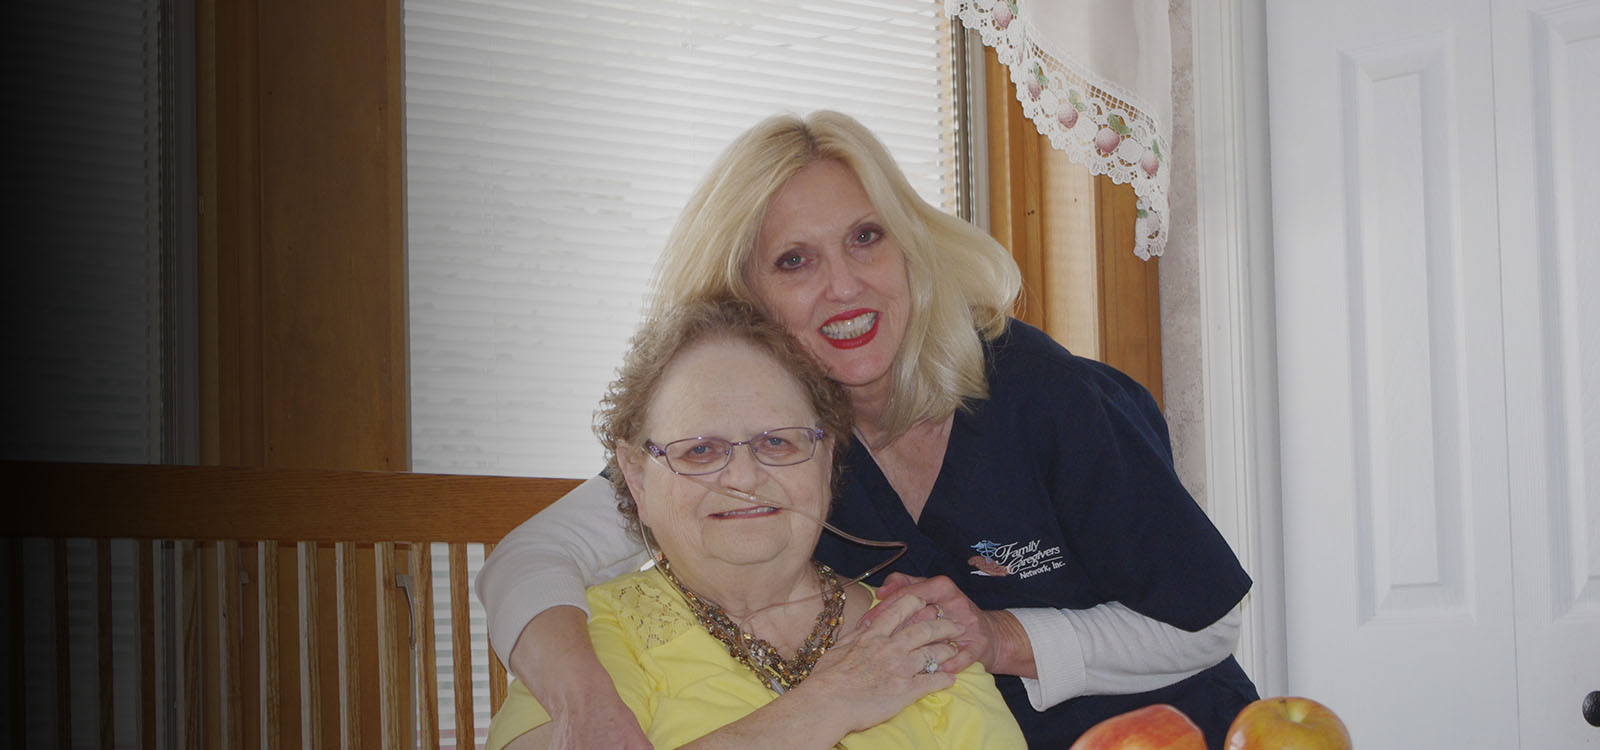 nurse smiling with an elderly person